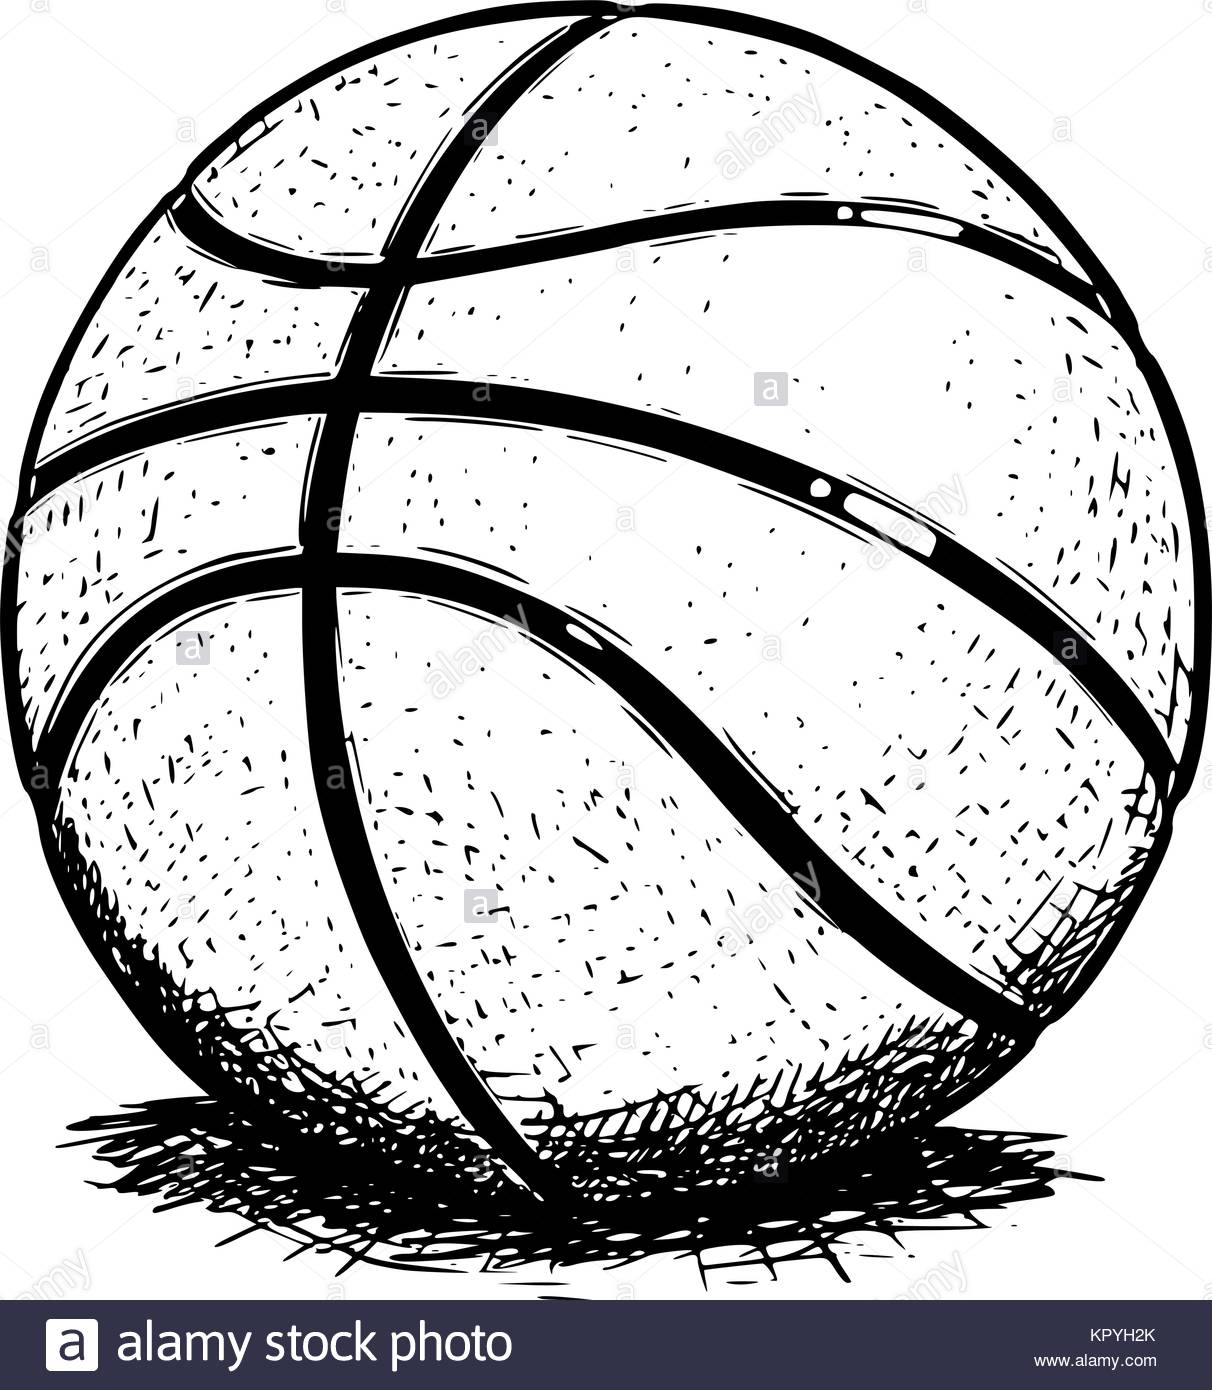 1212x1390 Vector Hand Drawing Drawn Illustration Of Basketball Ball Stock